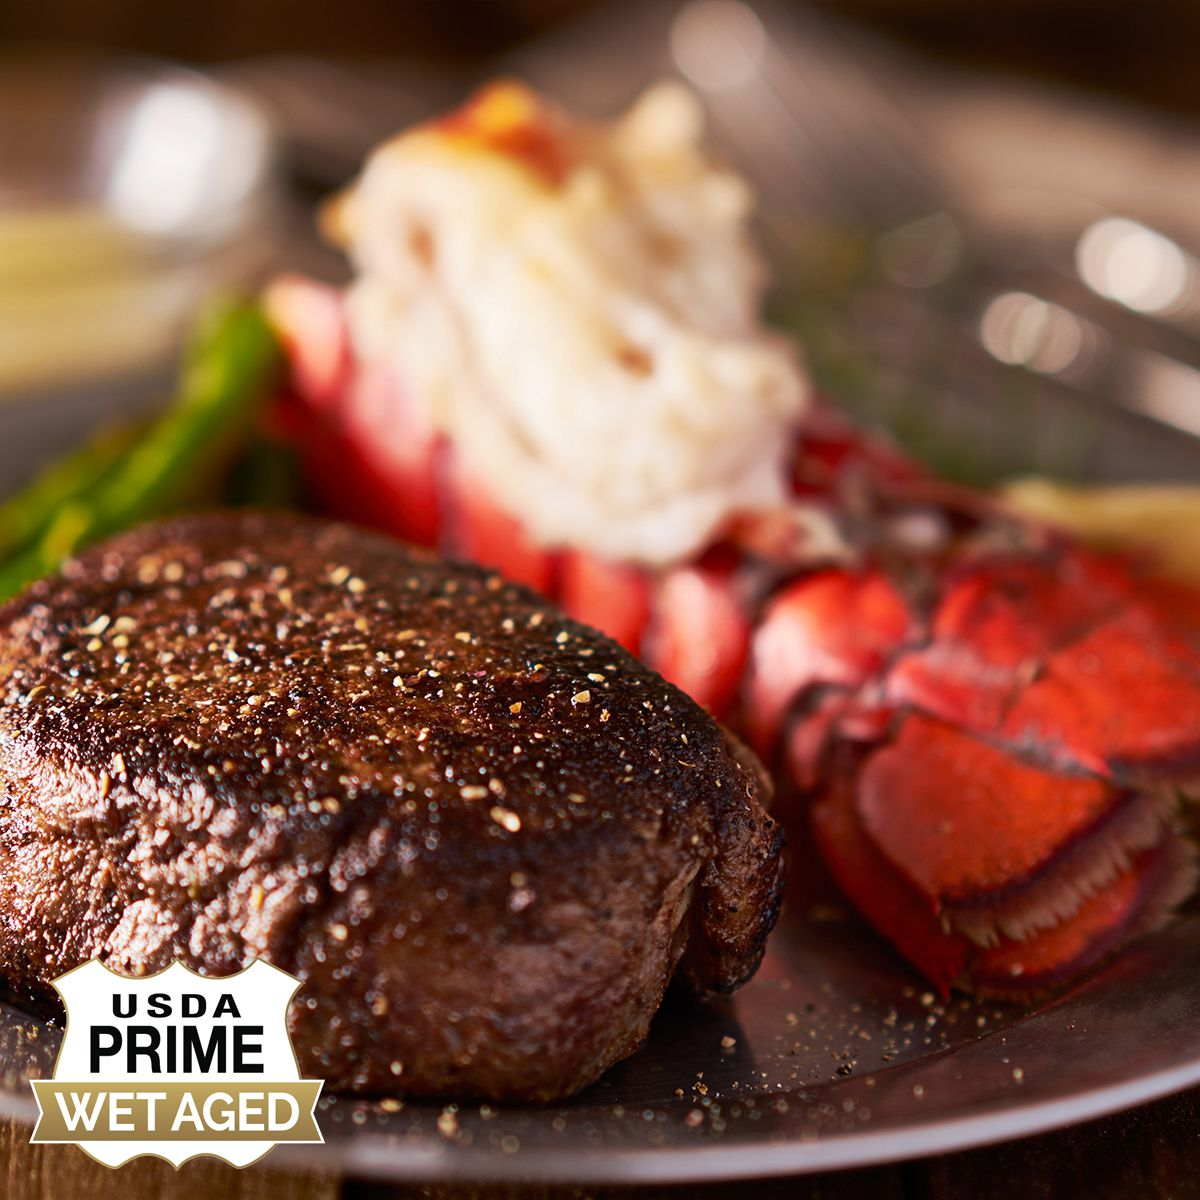 Claim Jumper launches Steakhouse Menu with new Prime Steaks